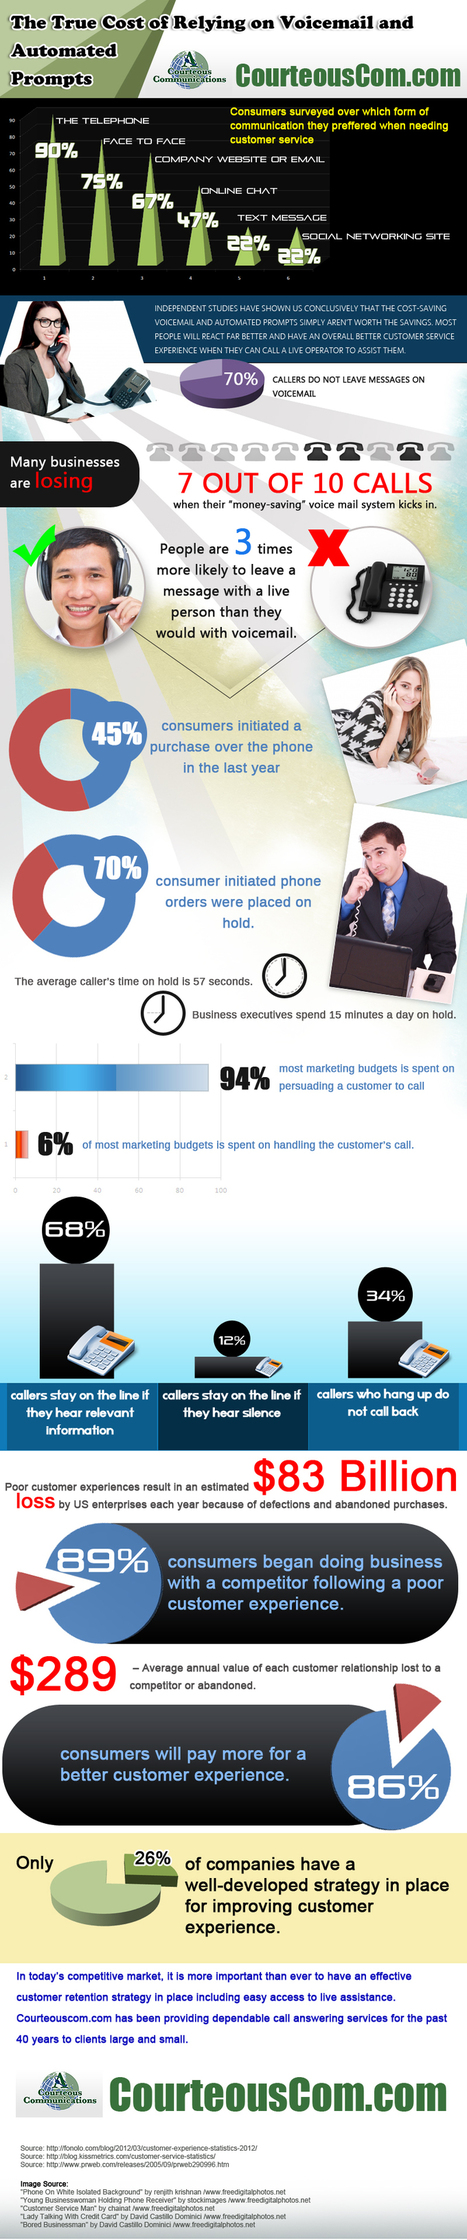 90% of Customers use Telephone to Voice Complaints | Telemarketing Services | Scoop.it